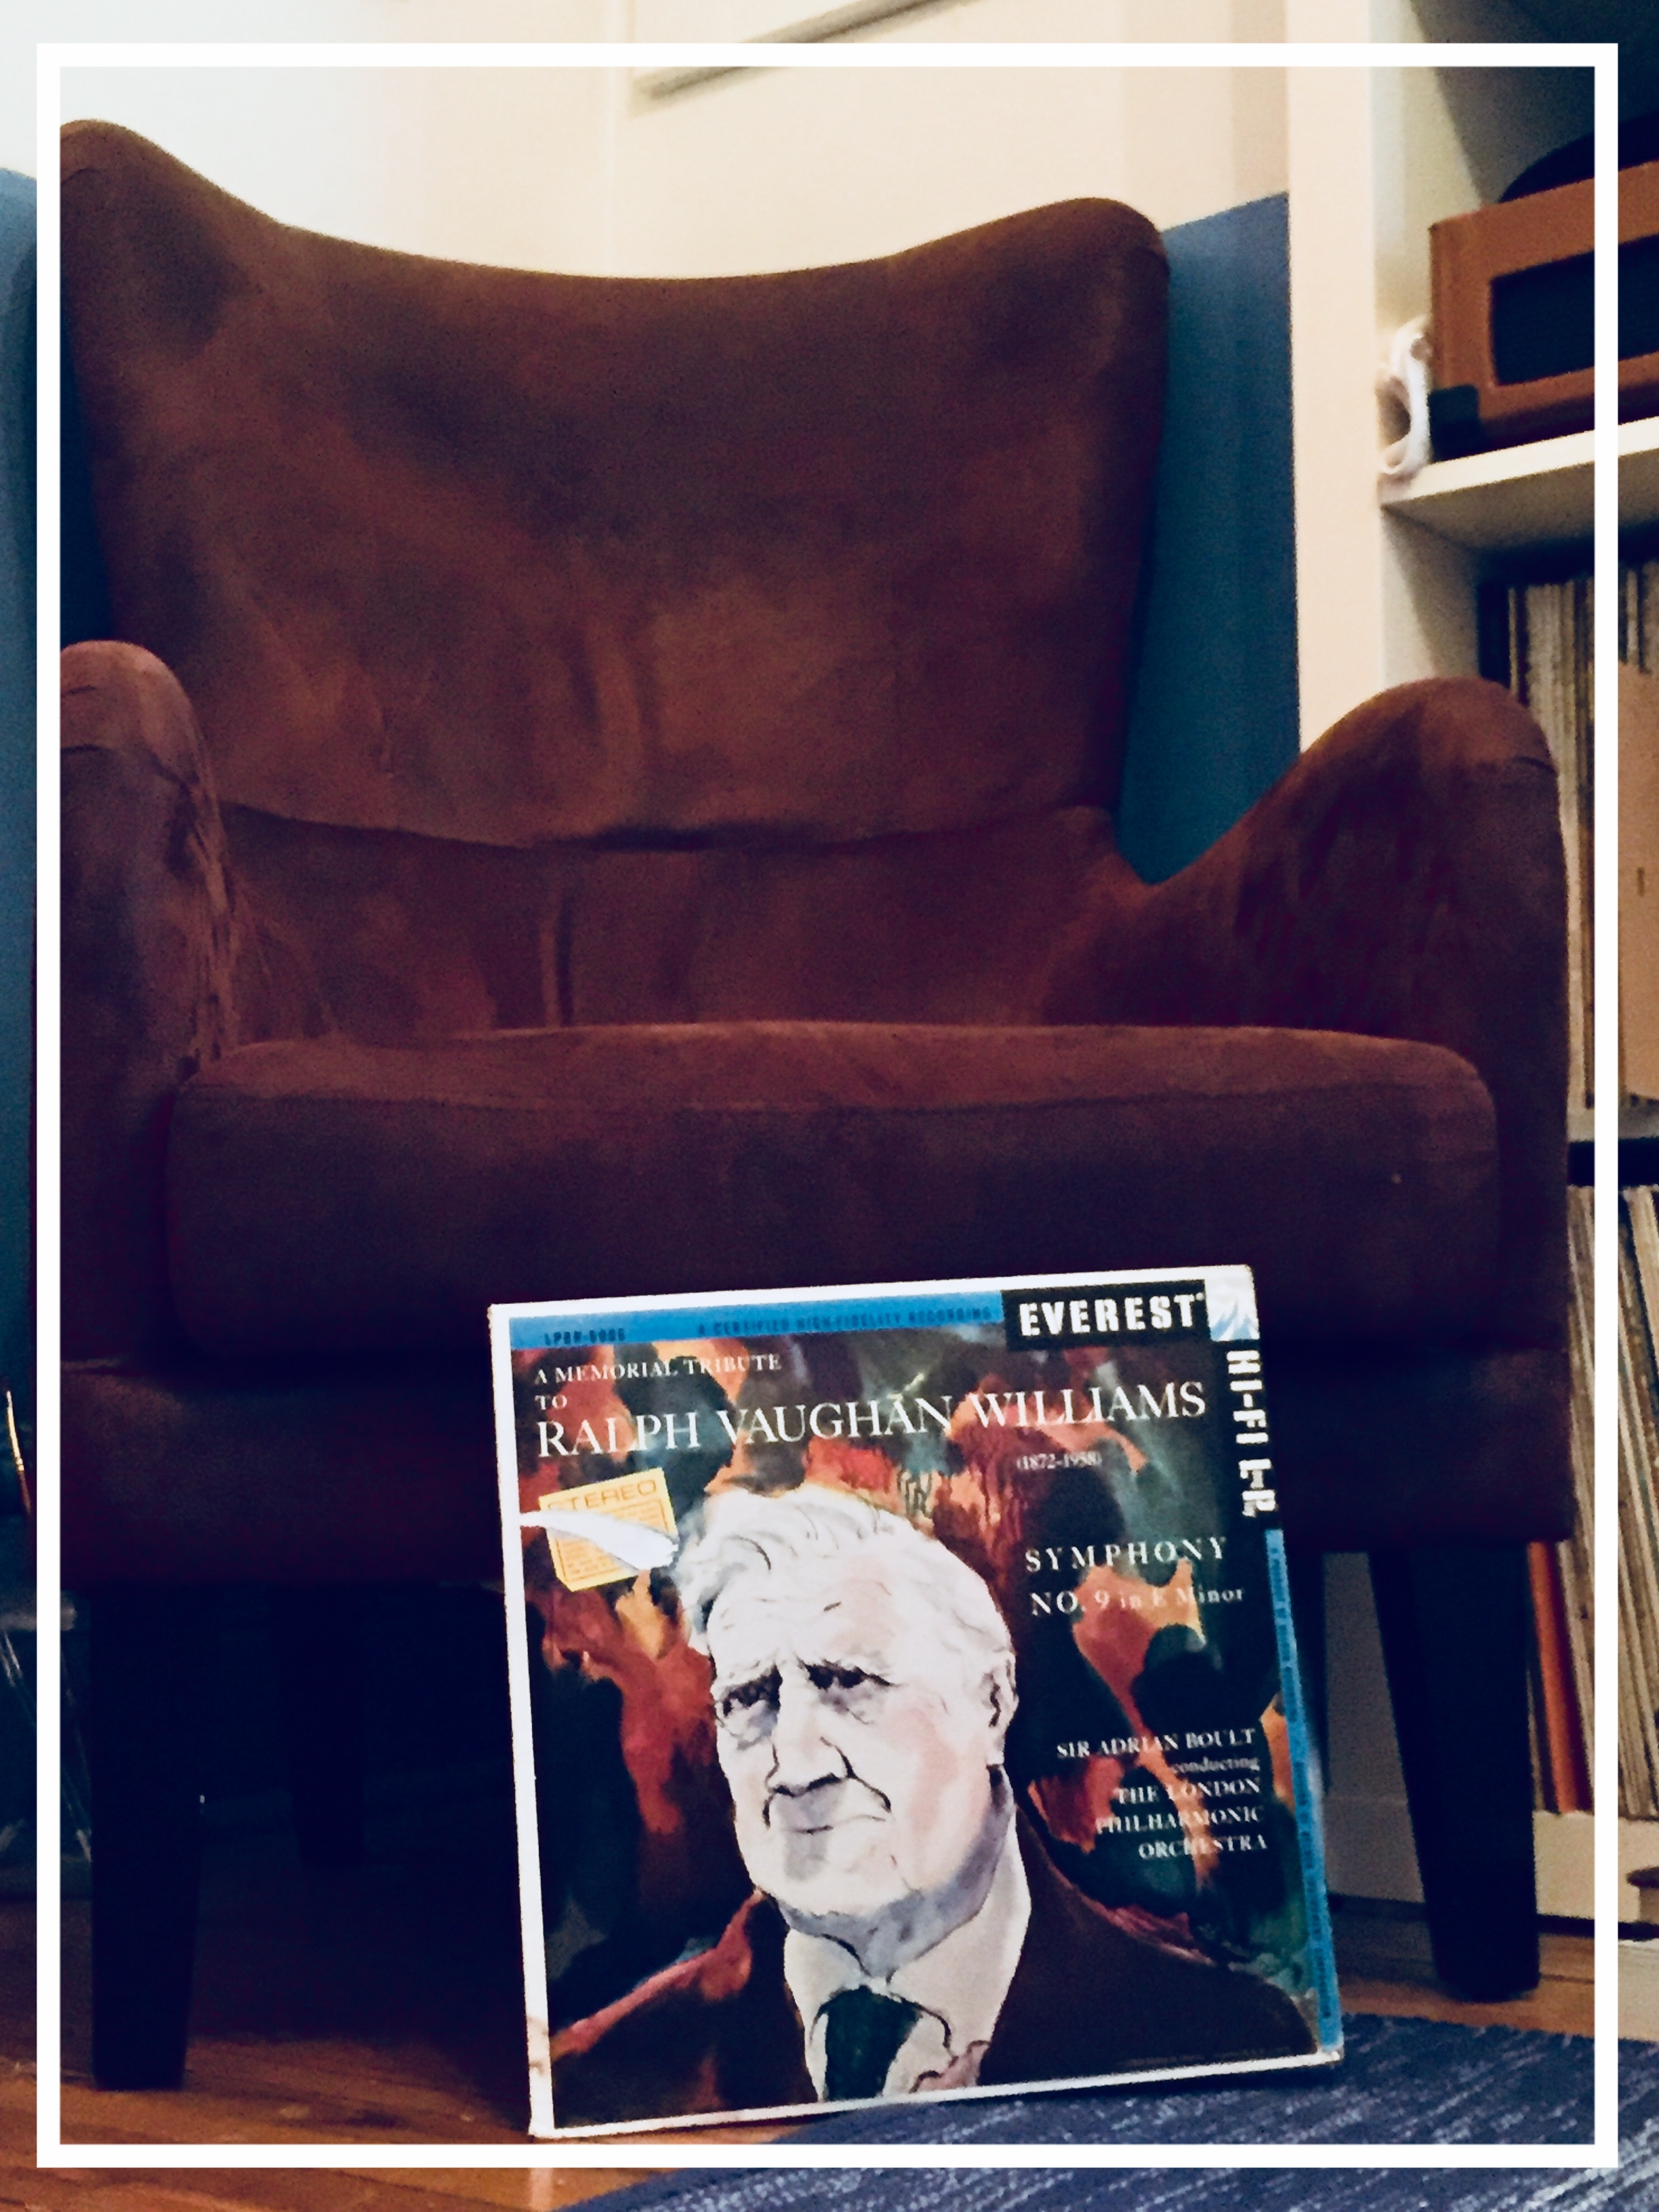 Ralph Vaughan Williams -- Symphony No. 9; Everest: Sir Adrian Boult Conducting the London Philharmonic Orchestra